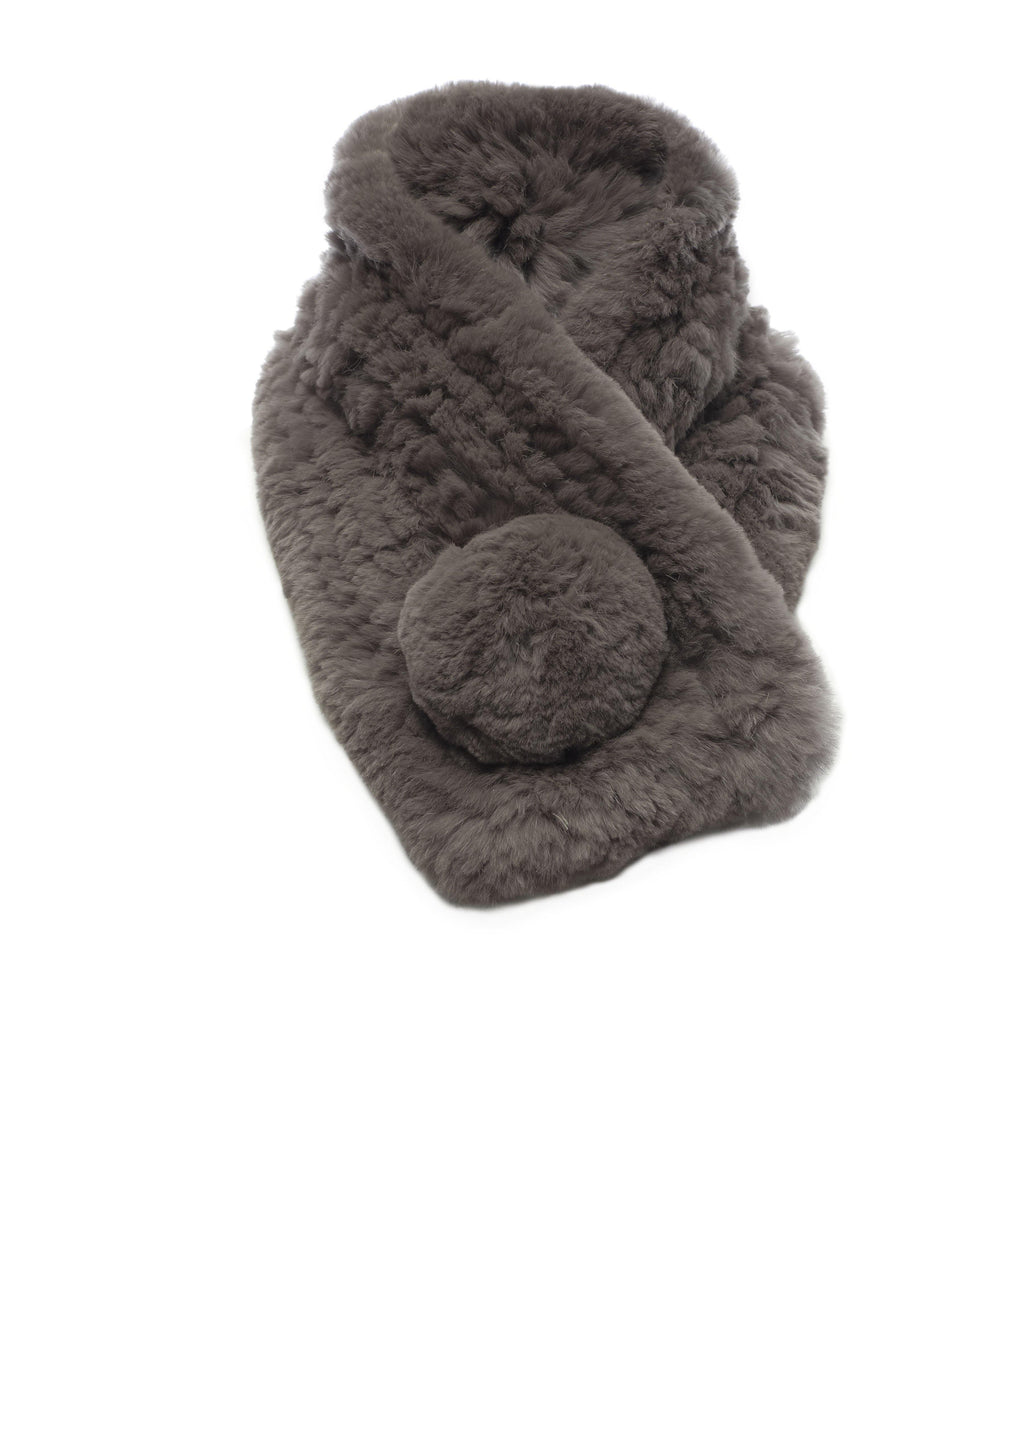 Taupe/Grey Bobble Knitted Rabbit Luxury Fur Scarf Fur5eight - Jessimara